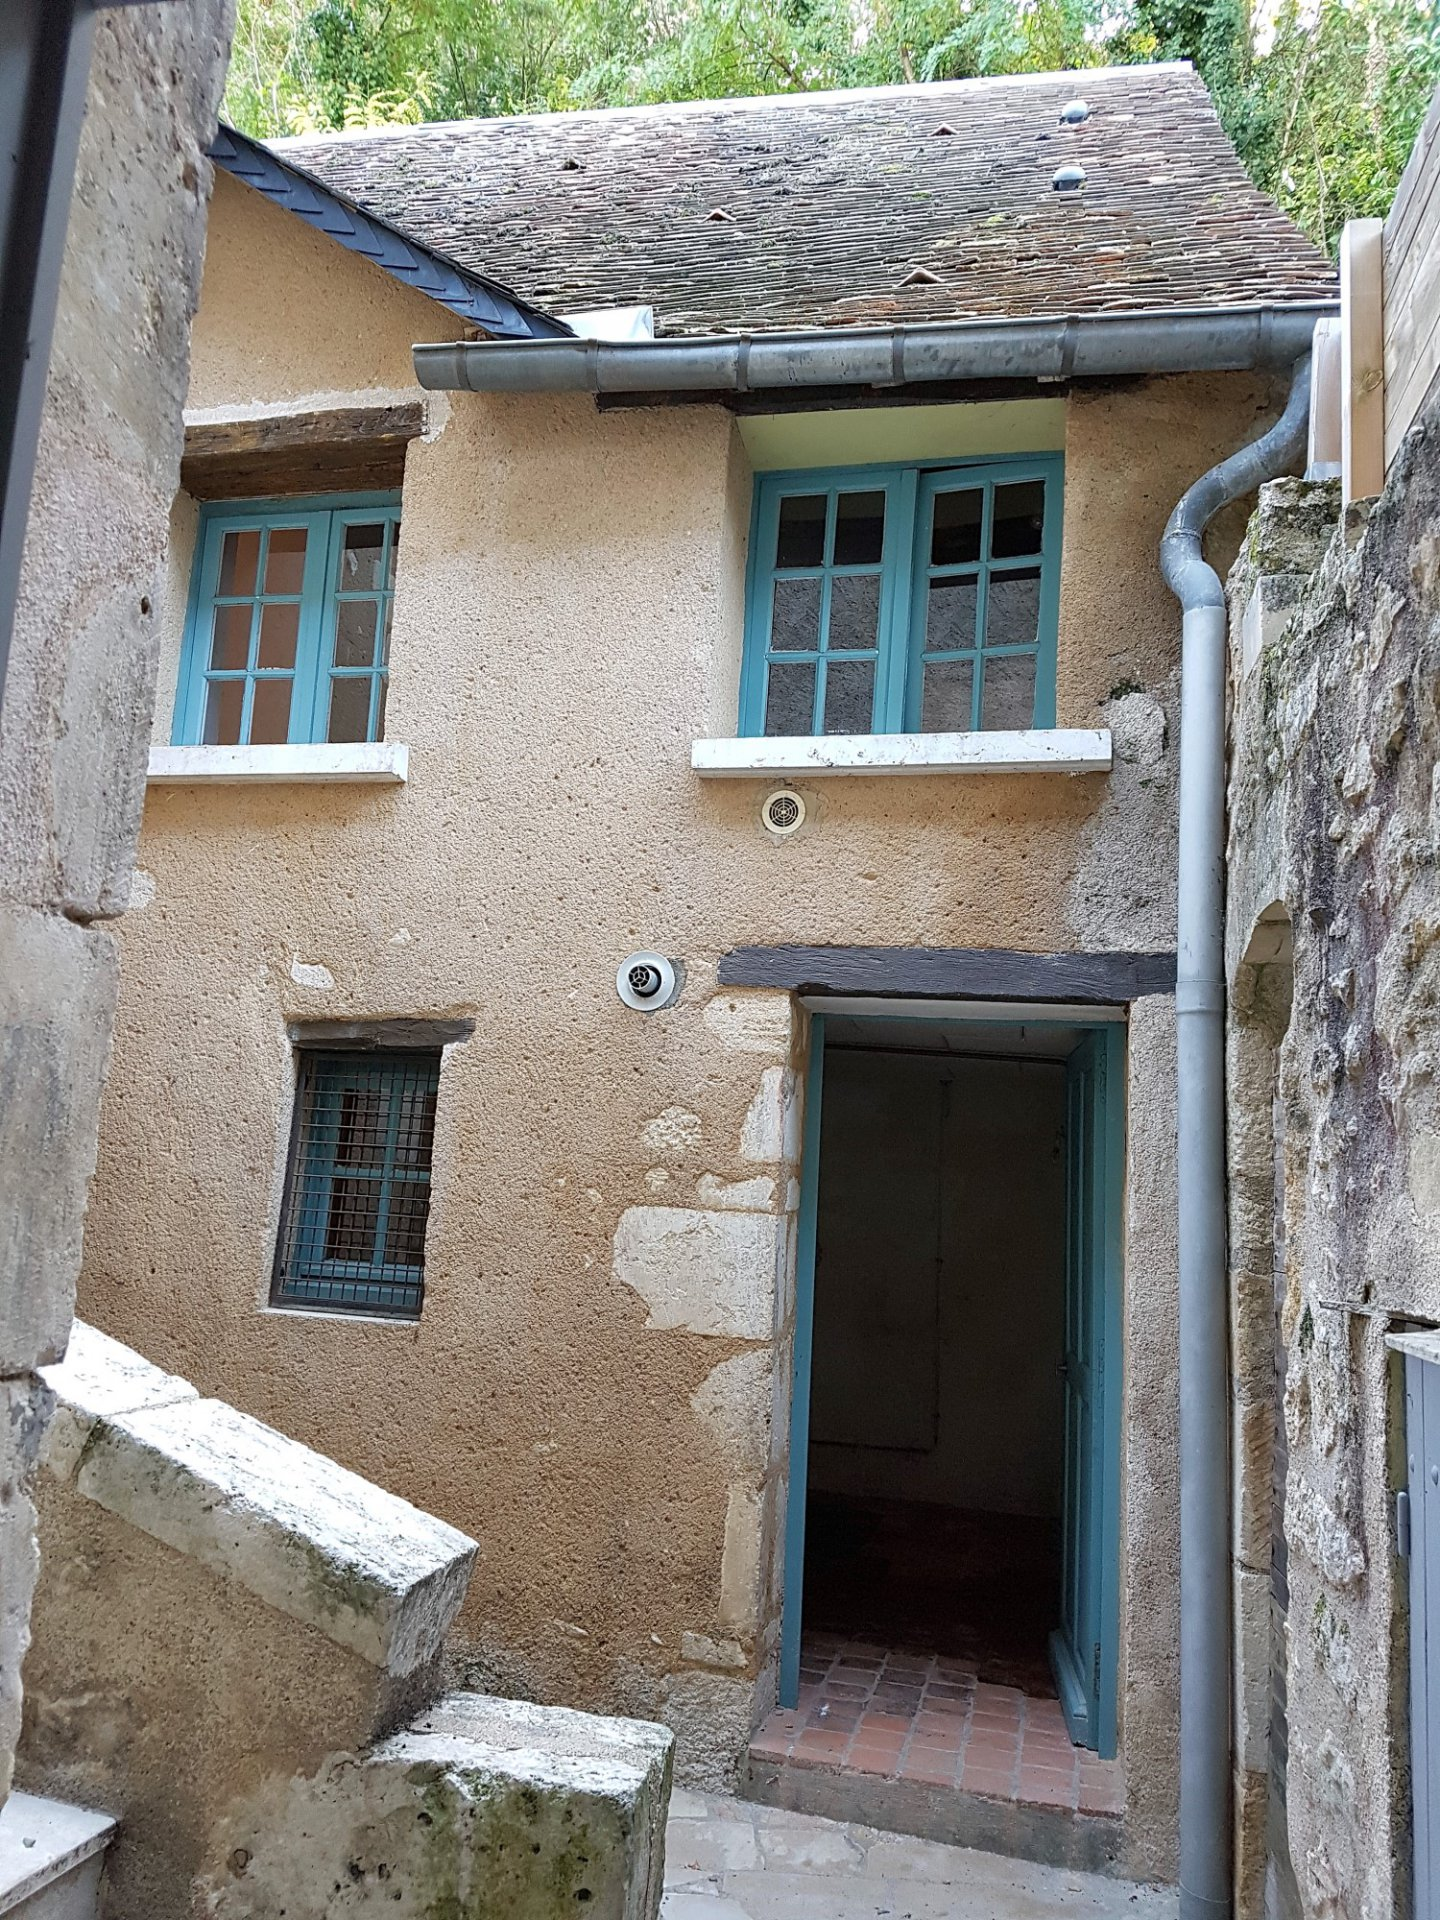 Le Blanc, Indre 36: house with 2 apartments and courtyard